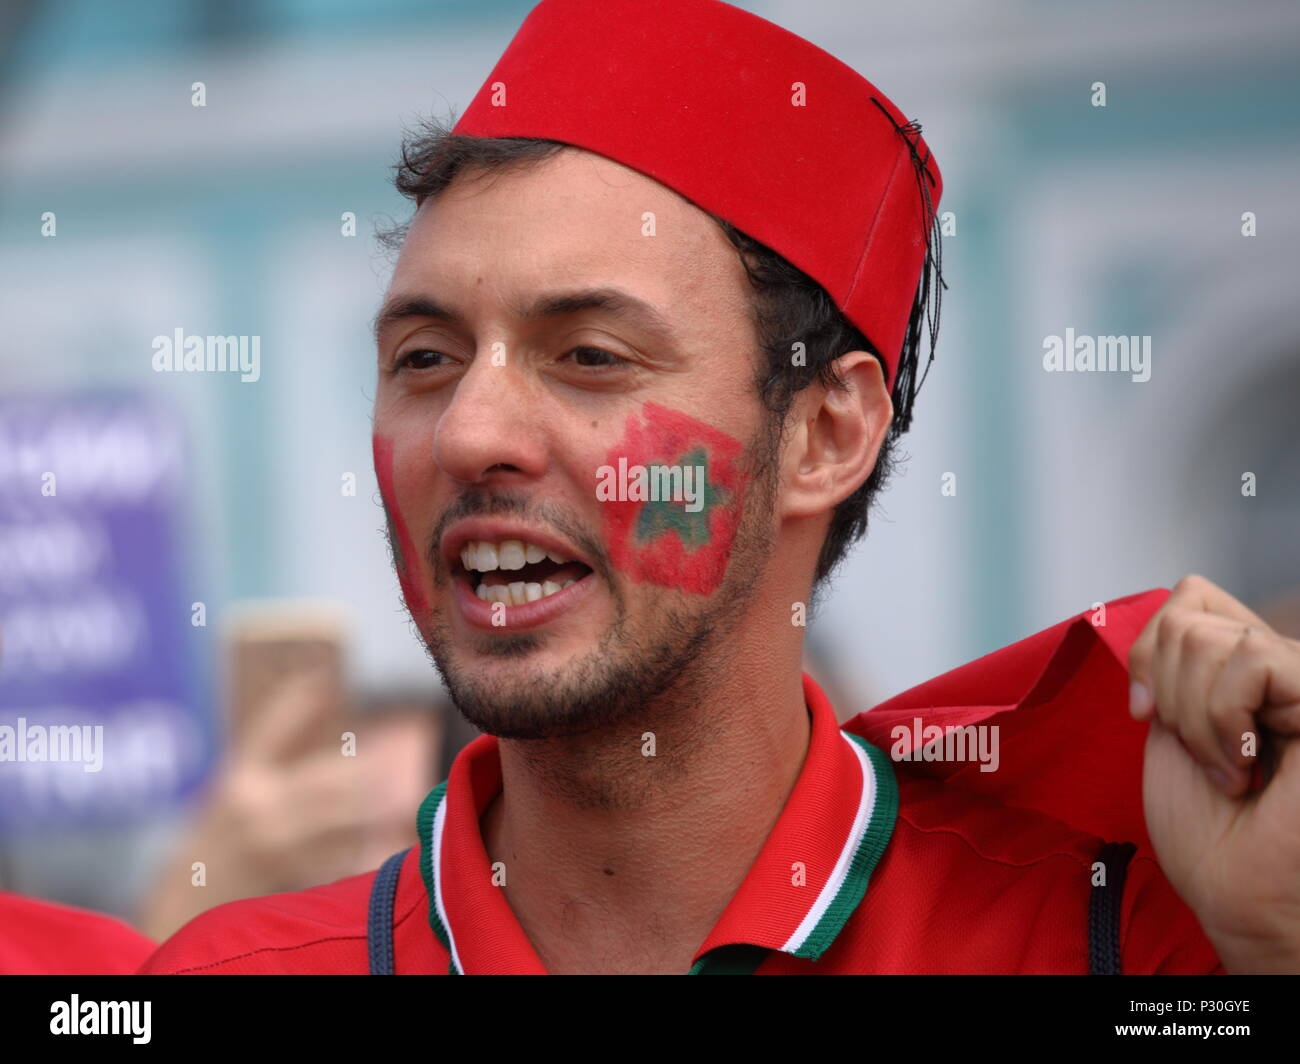 St. Petersburg, Russia - June 15, 2018: Moroccan football fan in Saint Petersburg on the day of first match of FIFA World Cup 2018 in the city. This m - Stock Image